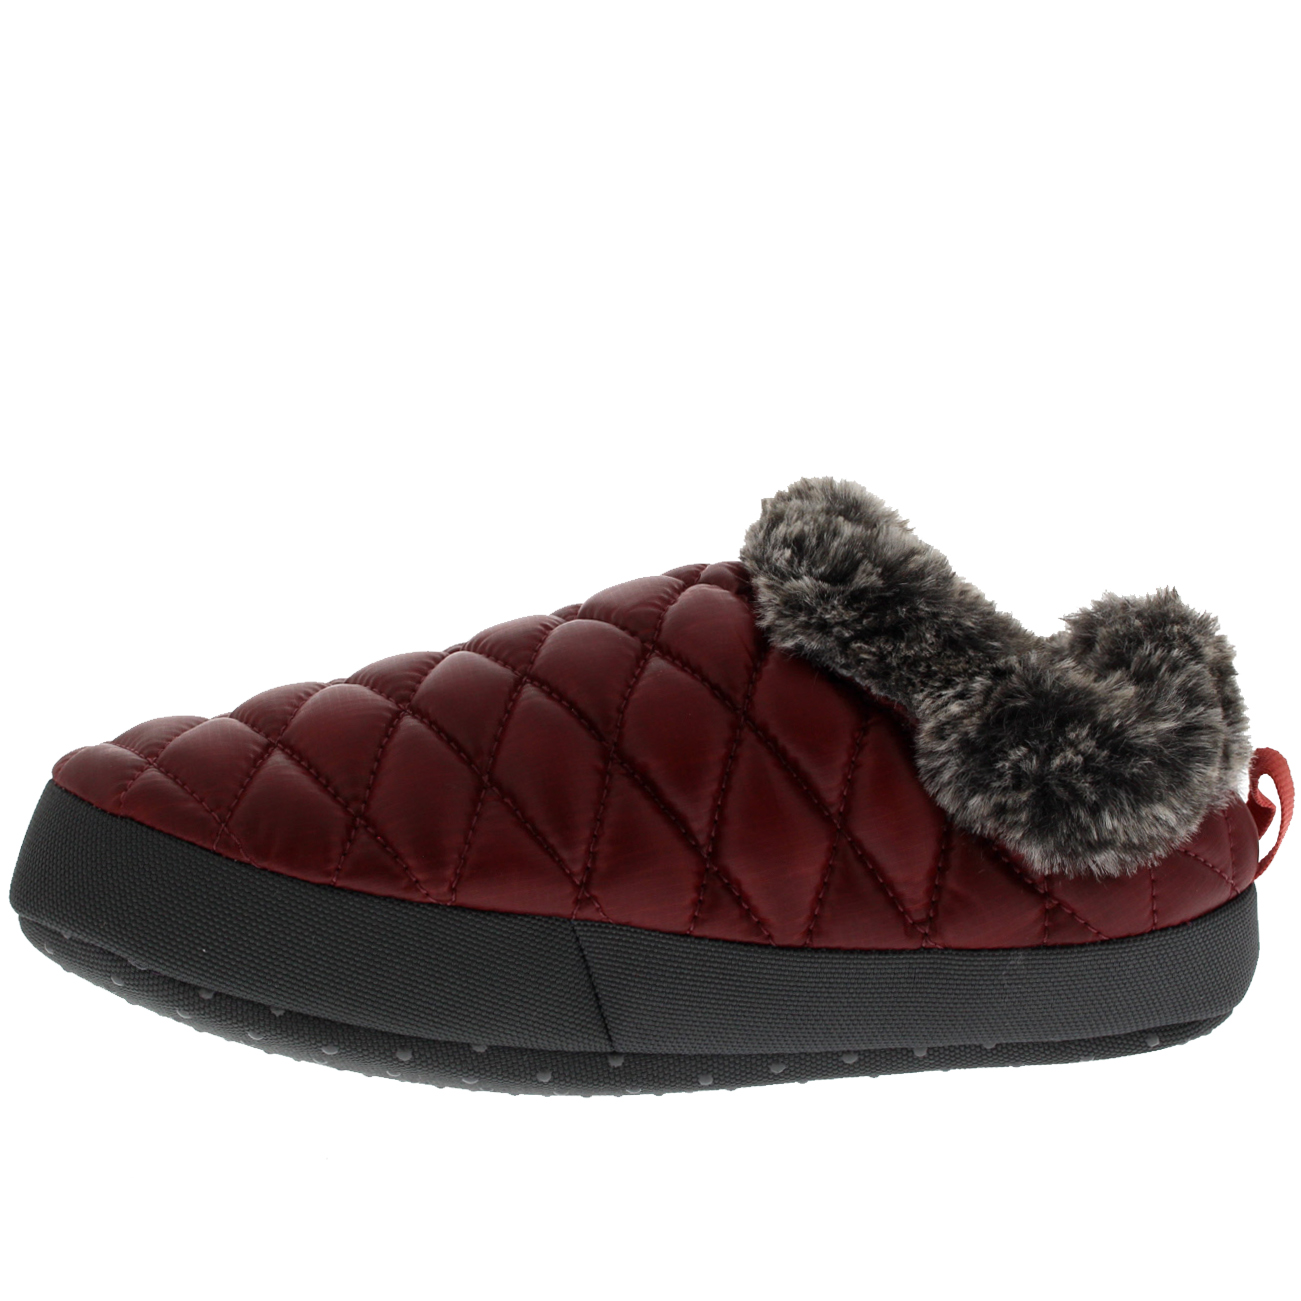 Ladies-The-North-Face-Thermoball-Tent-Mule-Faux-  sc 1 st  eBay & Ladies The North Face Thermoball Tent Mule Faux Fur IV Warm ...